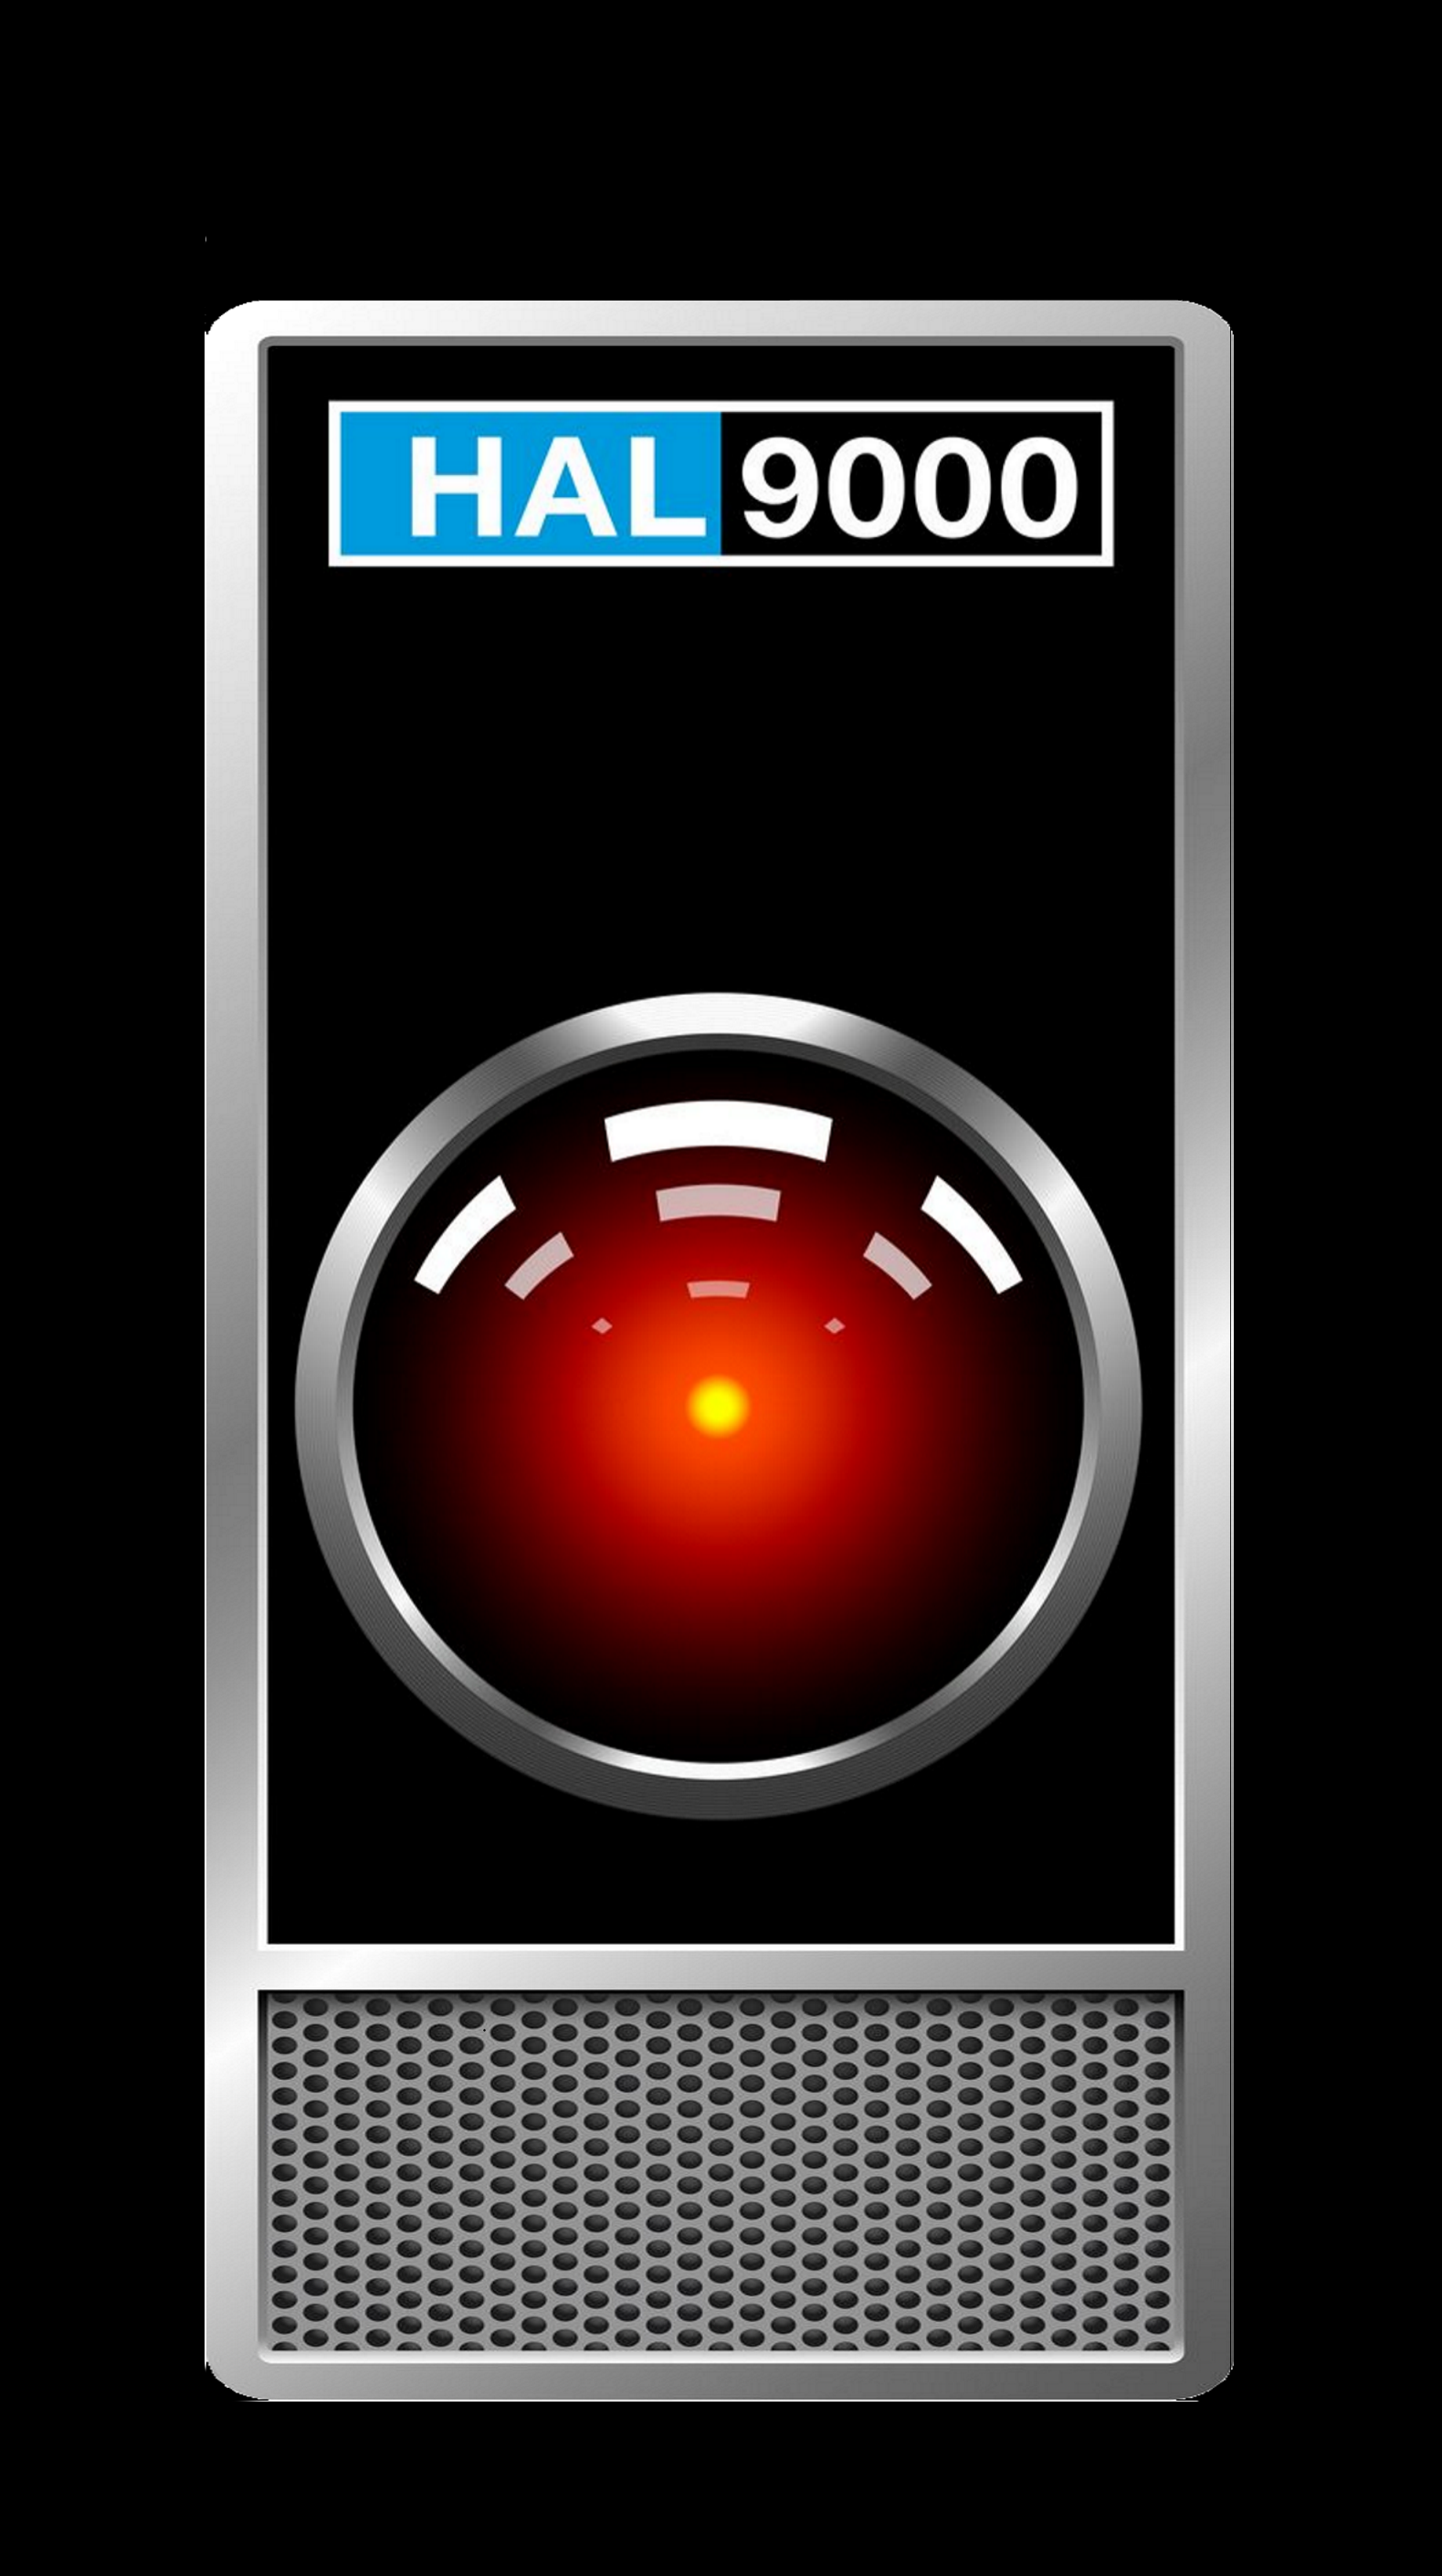 01 Hal9000 Wp For Iphone X Parallax Ver2 ロゴデザイン デザイン